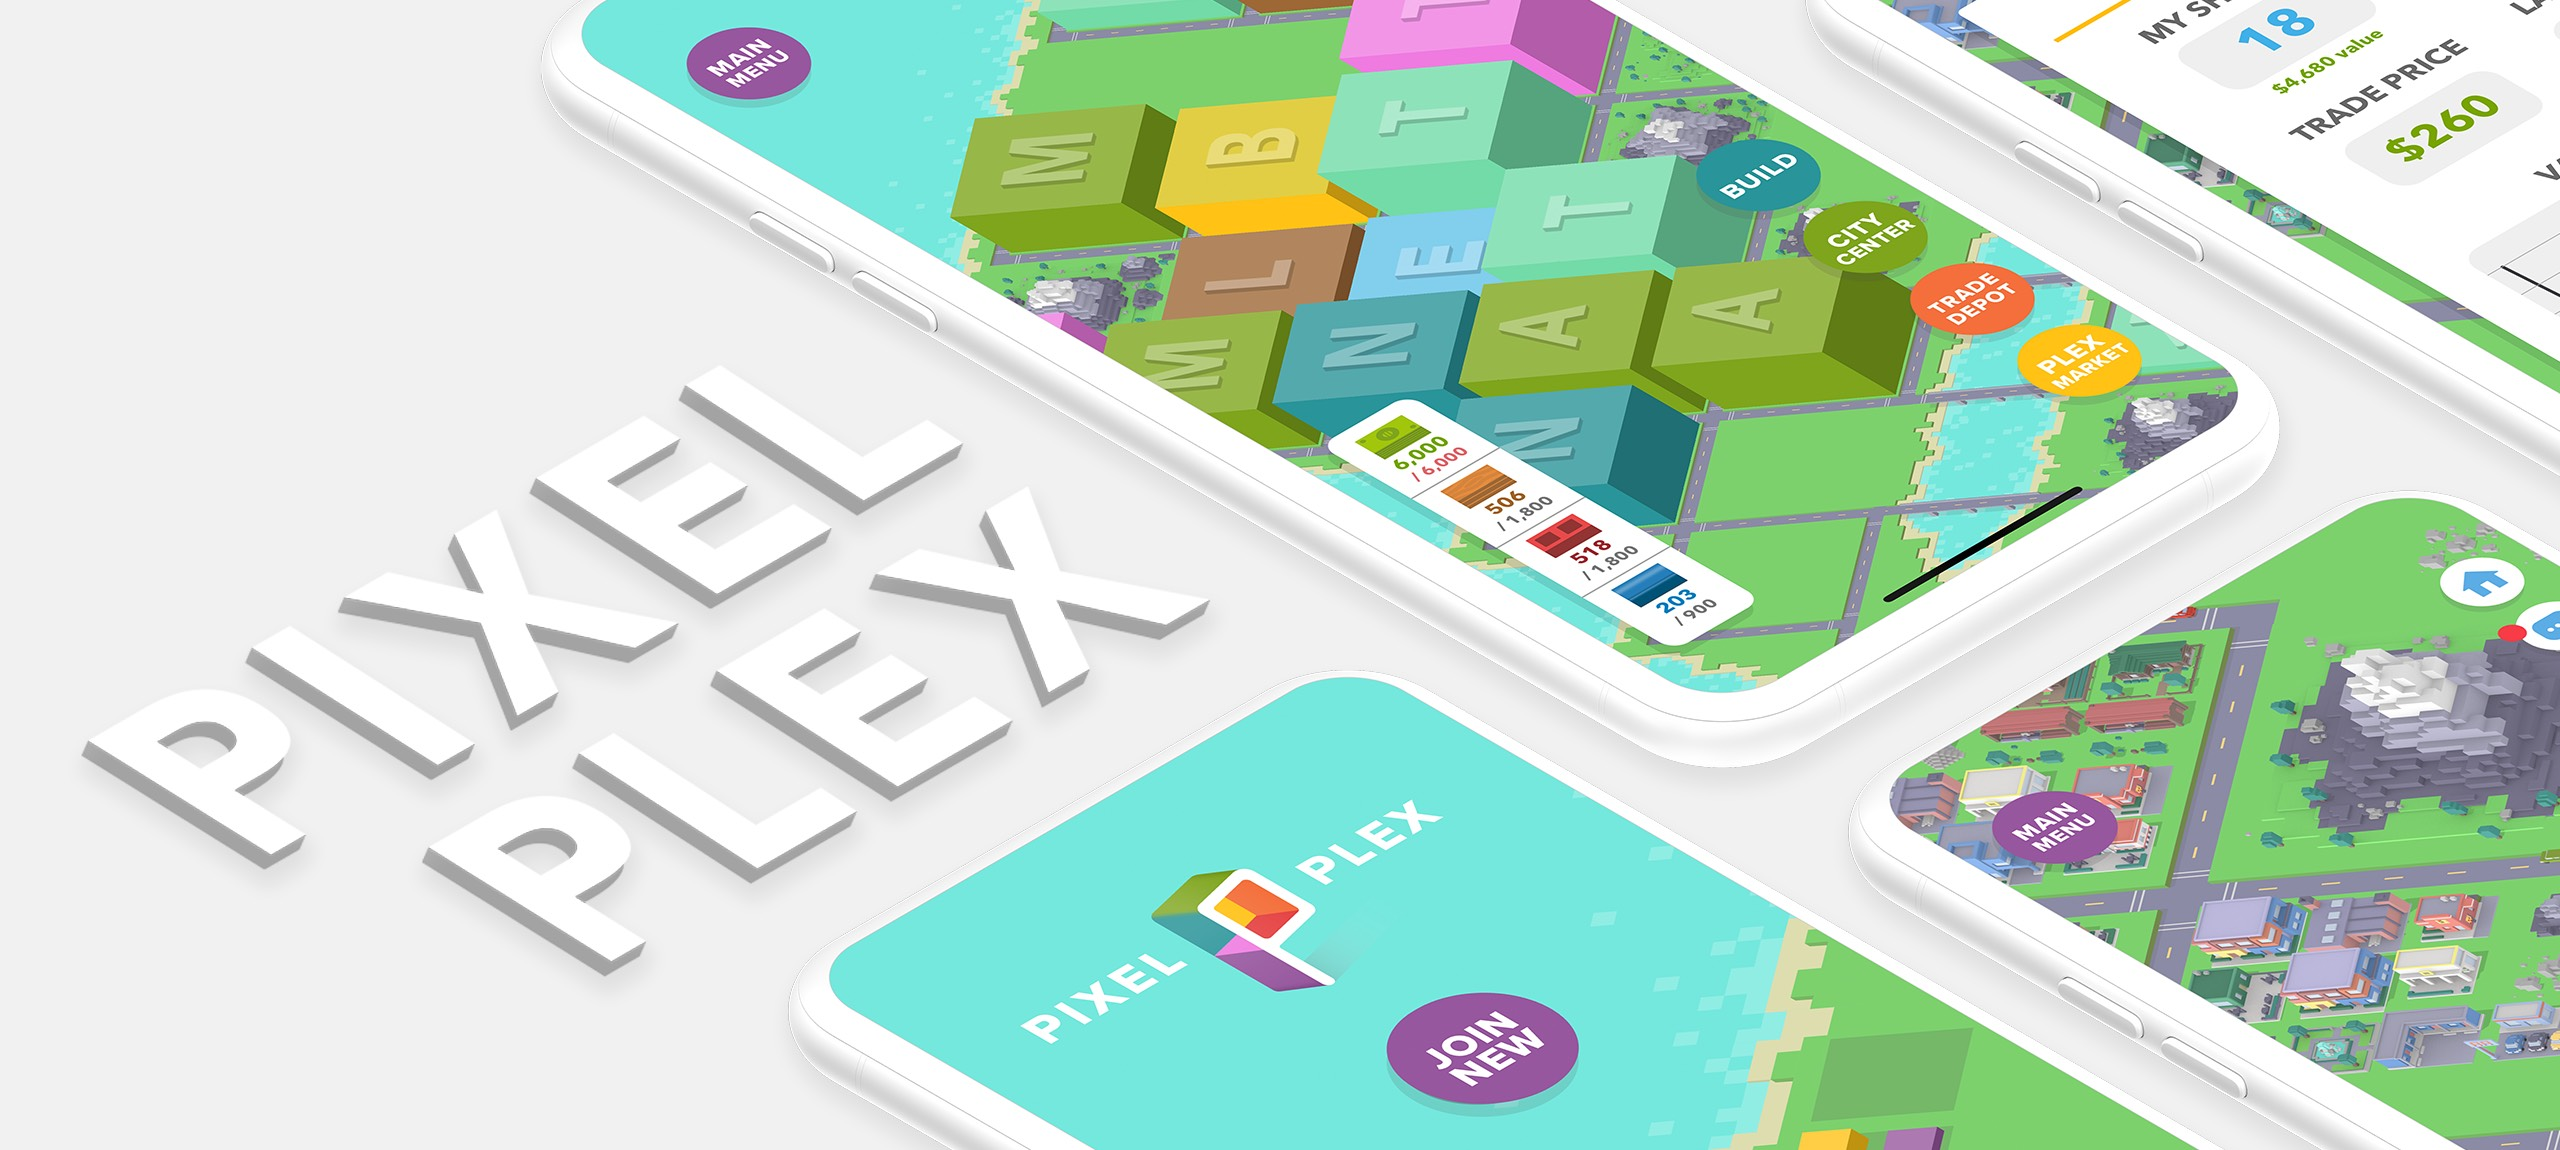 [Update] Believe it or not, Pixel Plex looks like an interesting city builder and it's out now